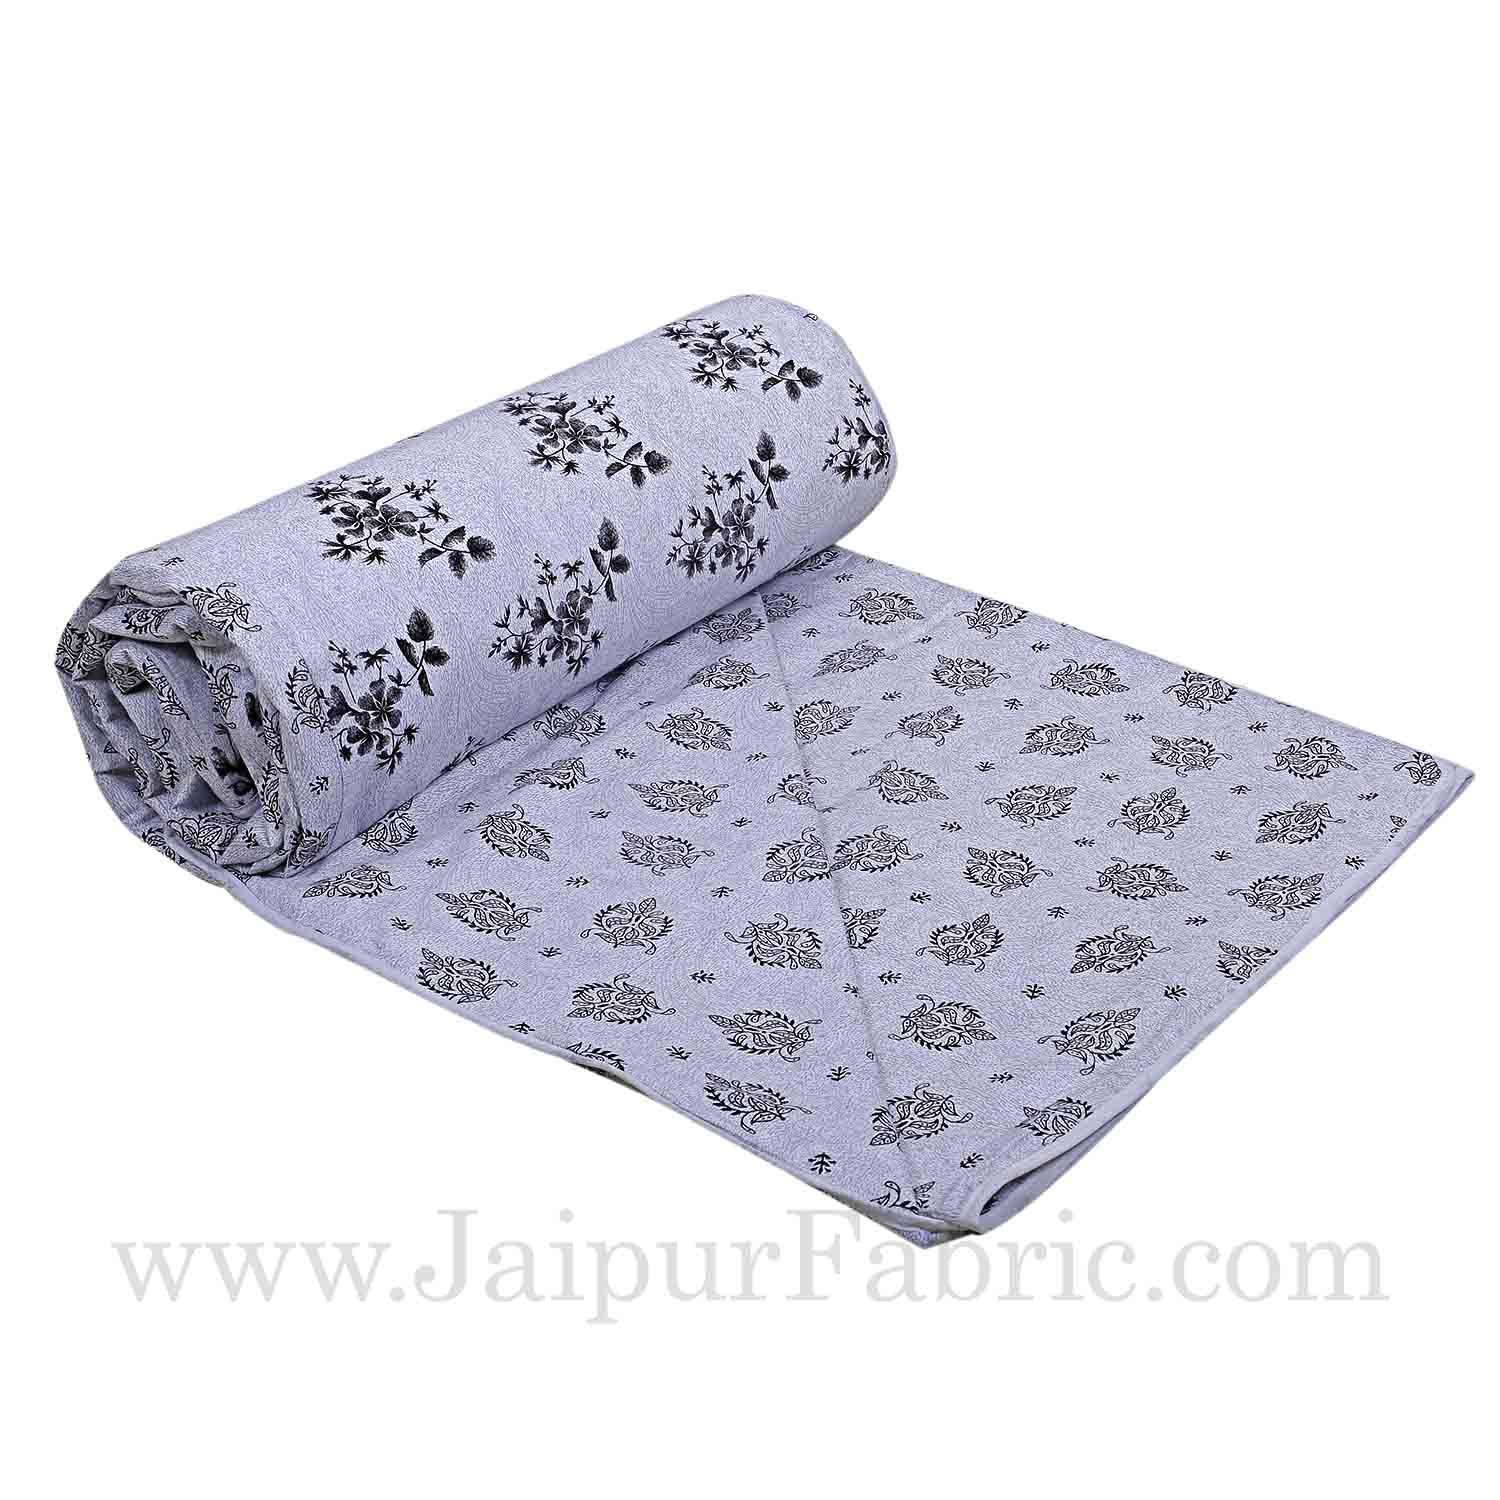 Cambric Cotton Double bed Reversible Dohar with pastel floral print